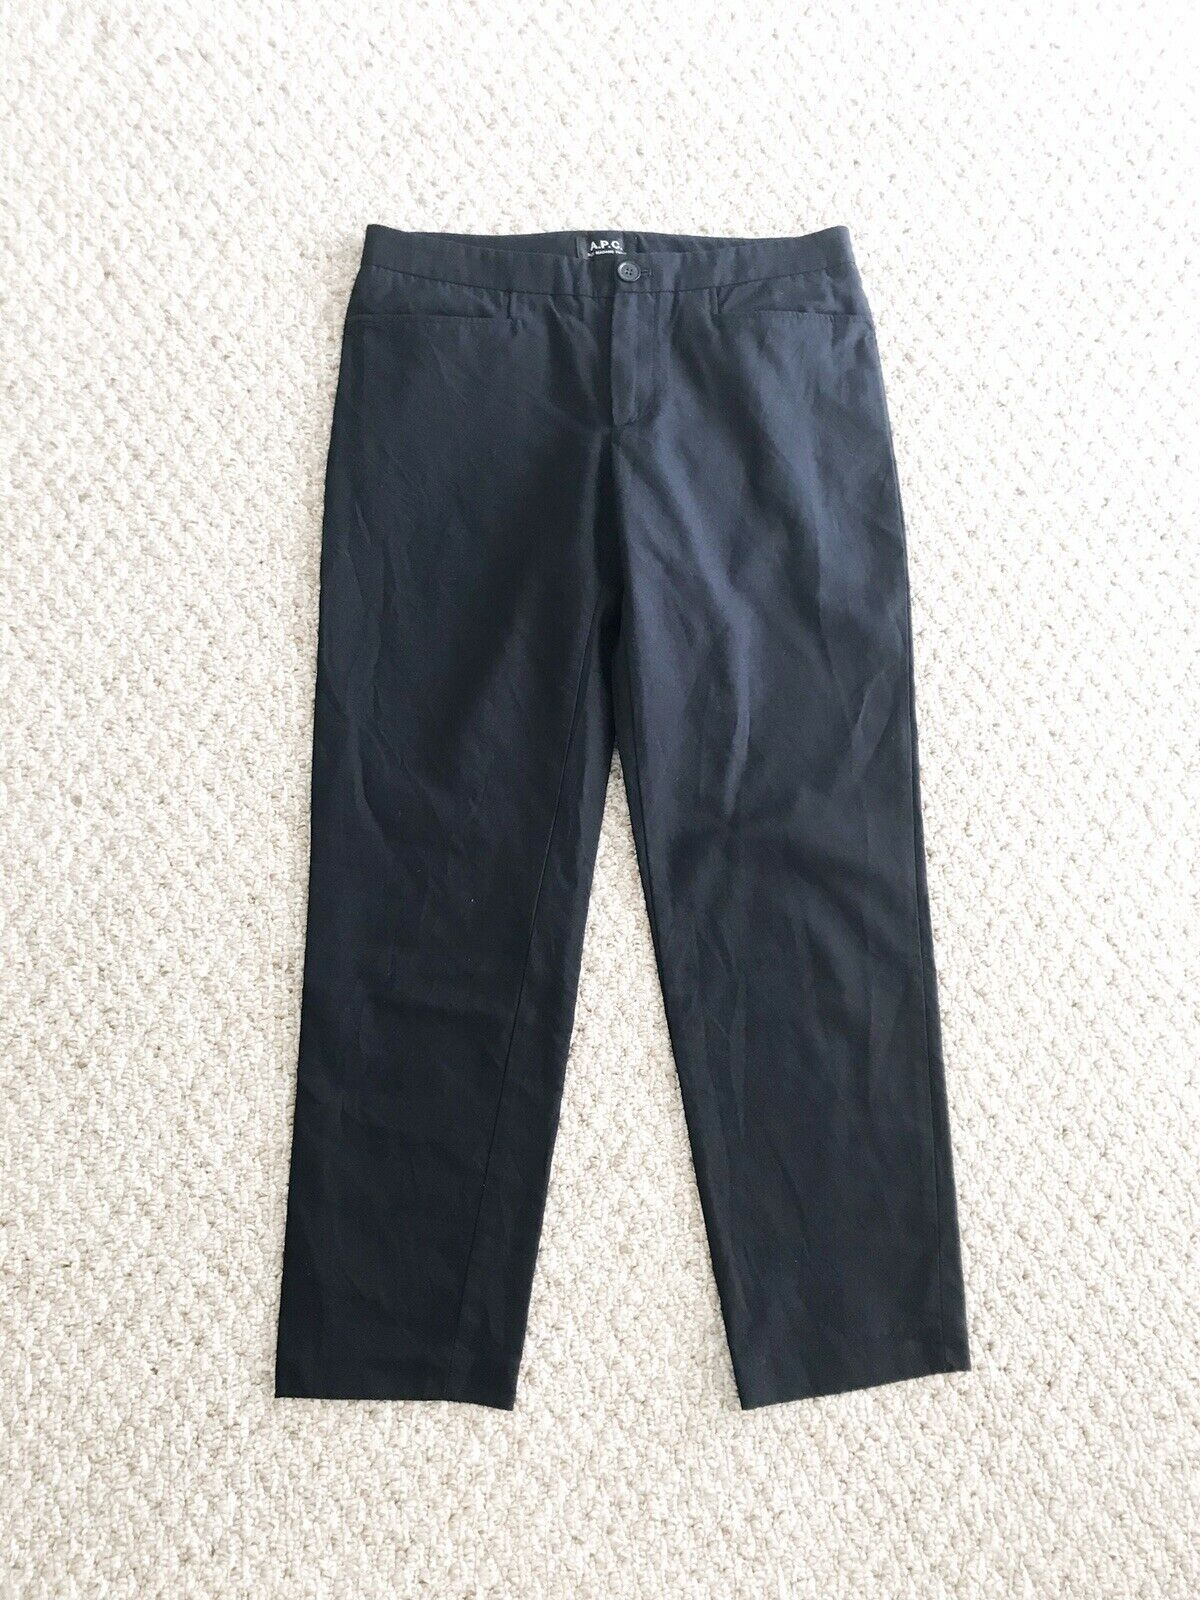 APC Trousers Pants Navy Blau damen Cotton Linen Sz 36